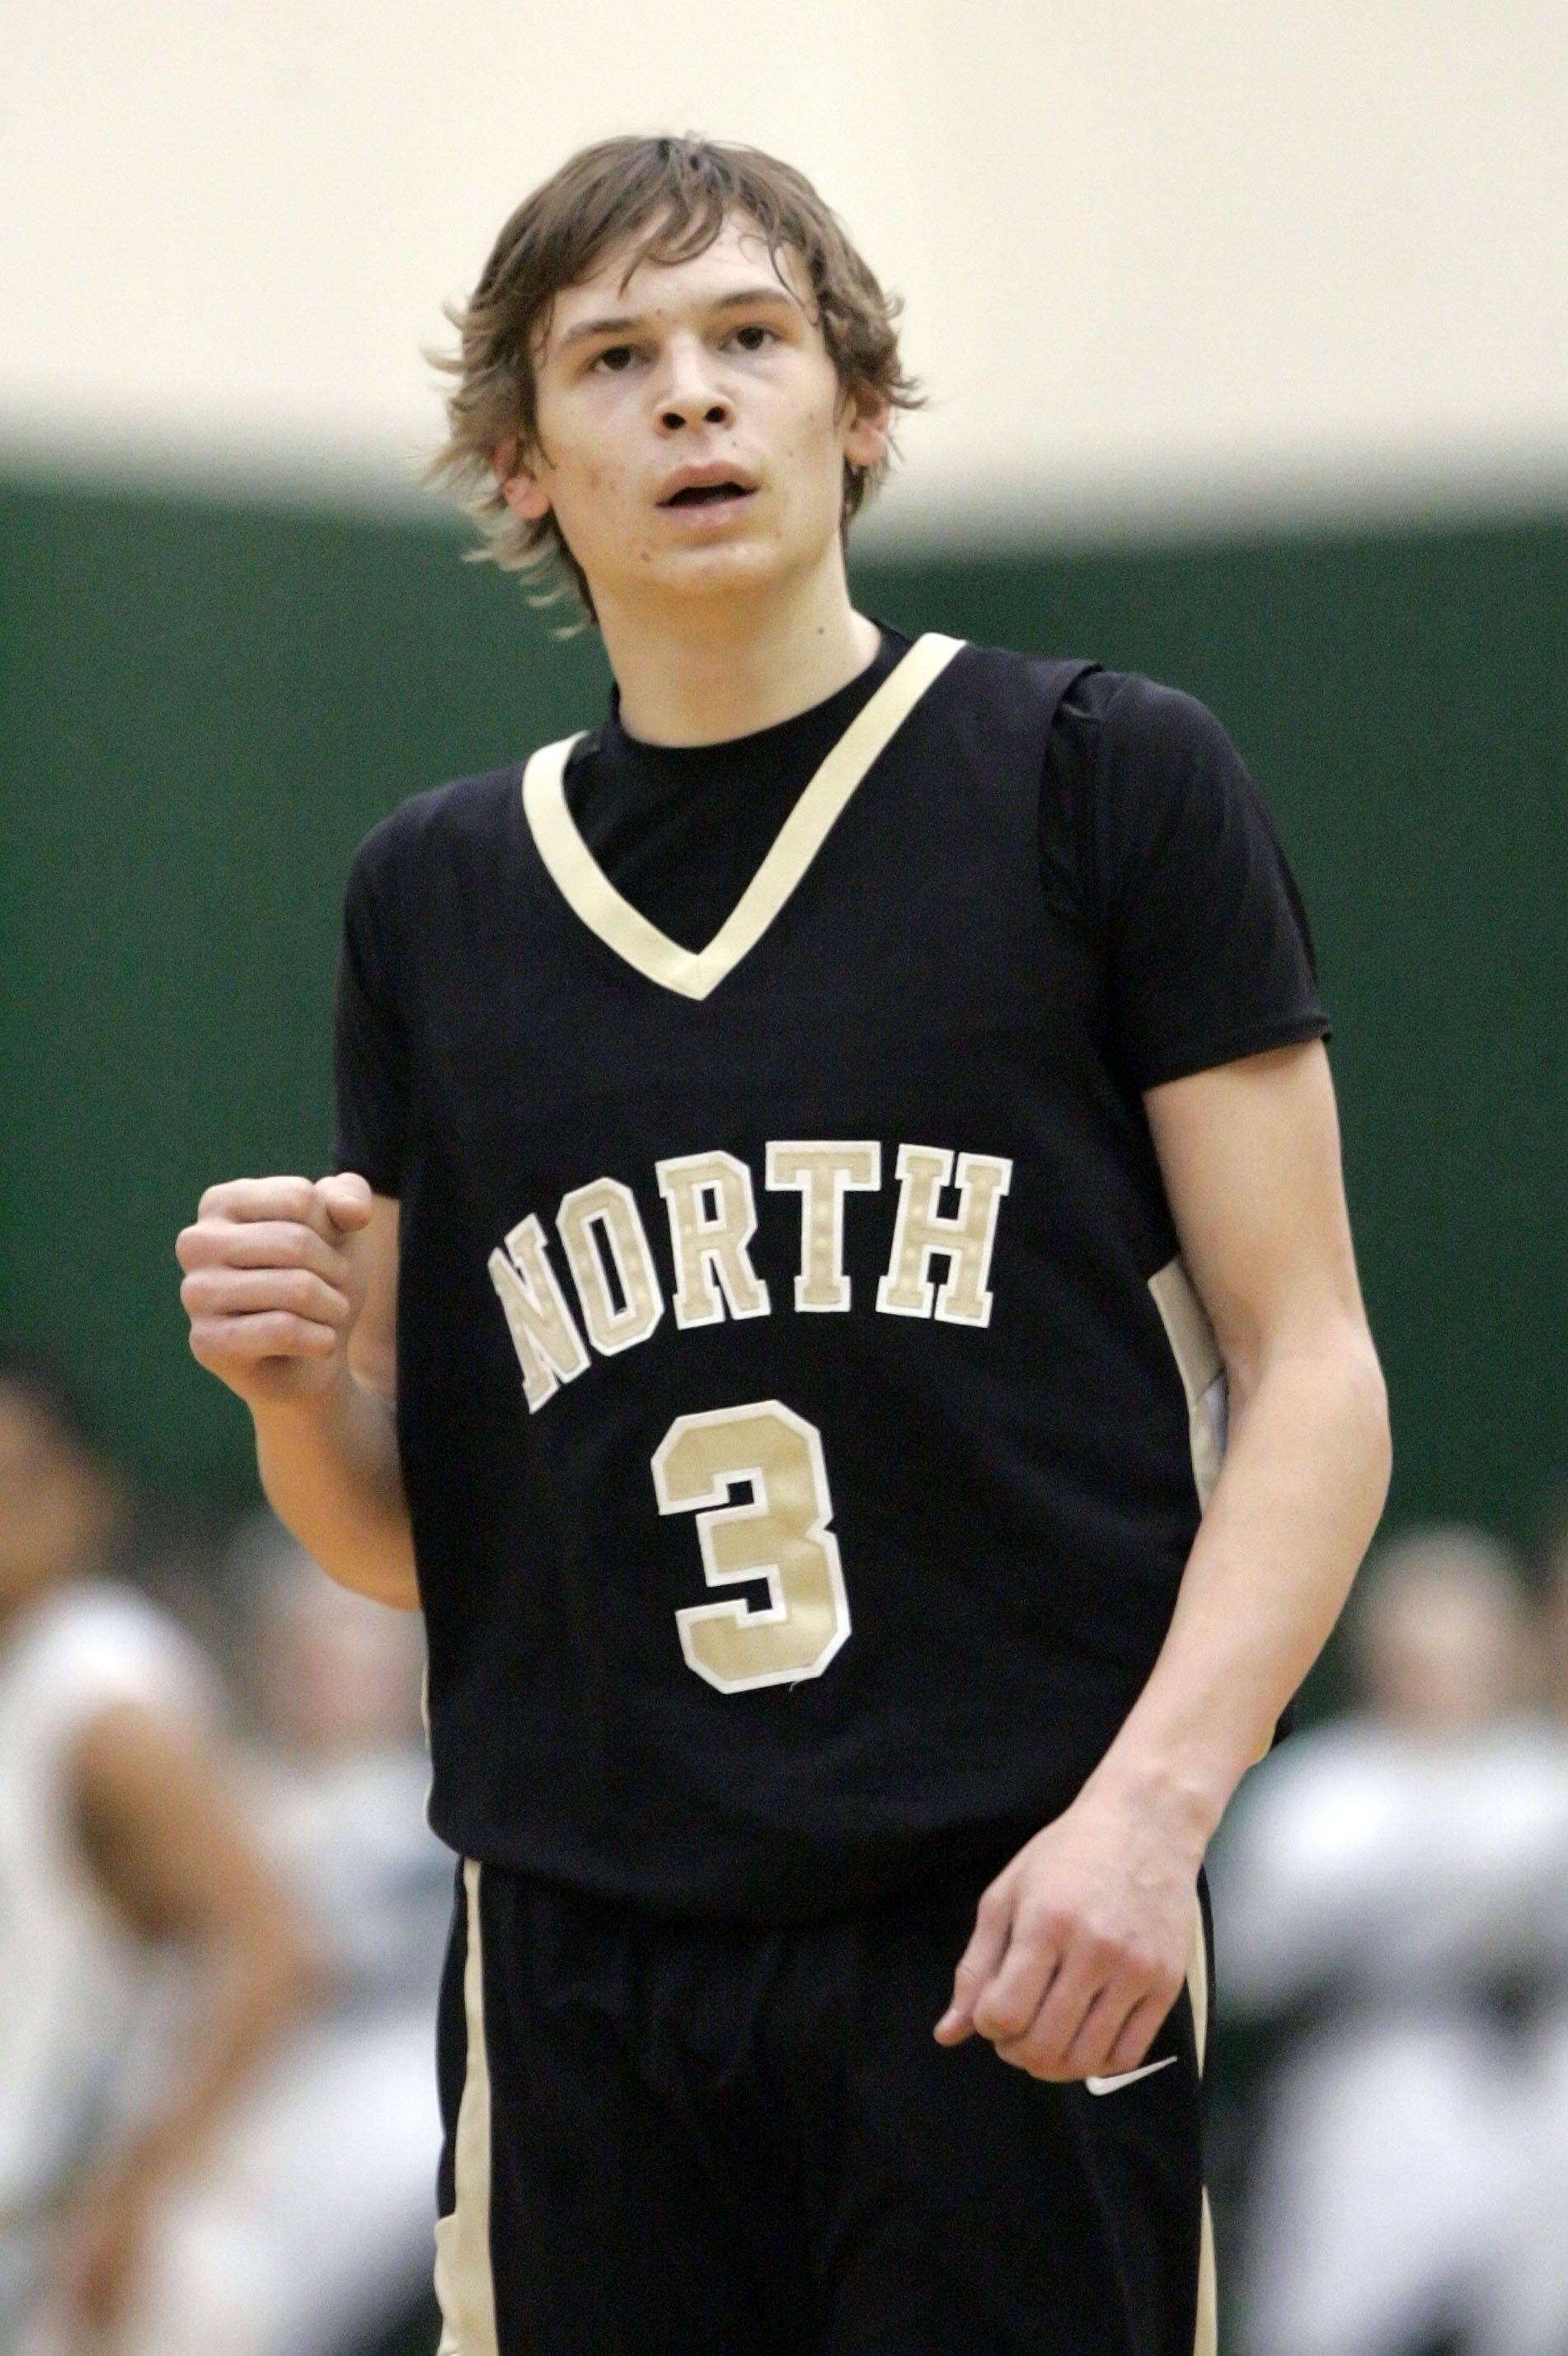 Images from the Grayslake North at Grayslake Central boys basketball game Tuesday, January 11.